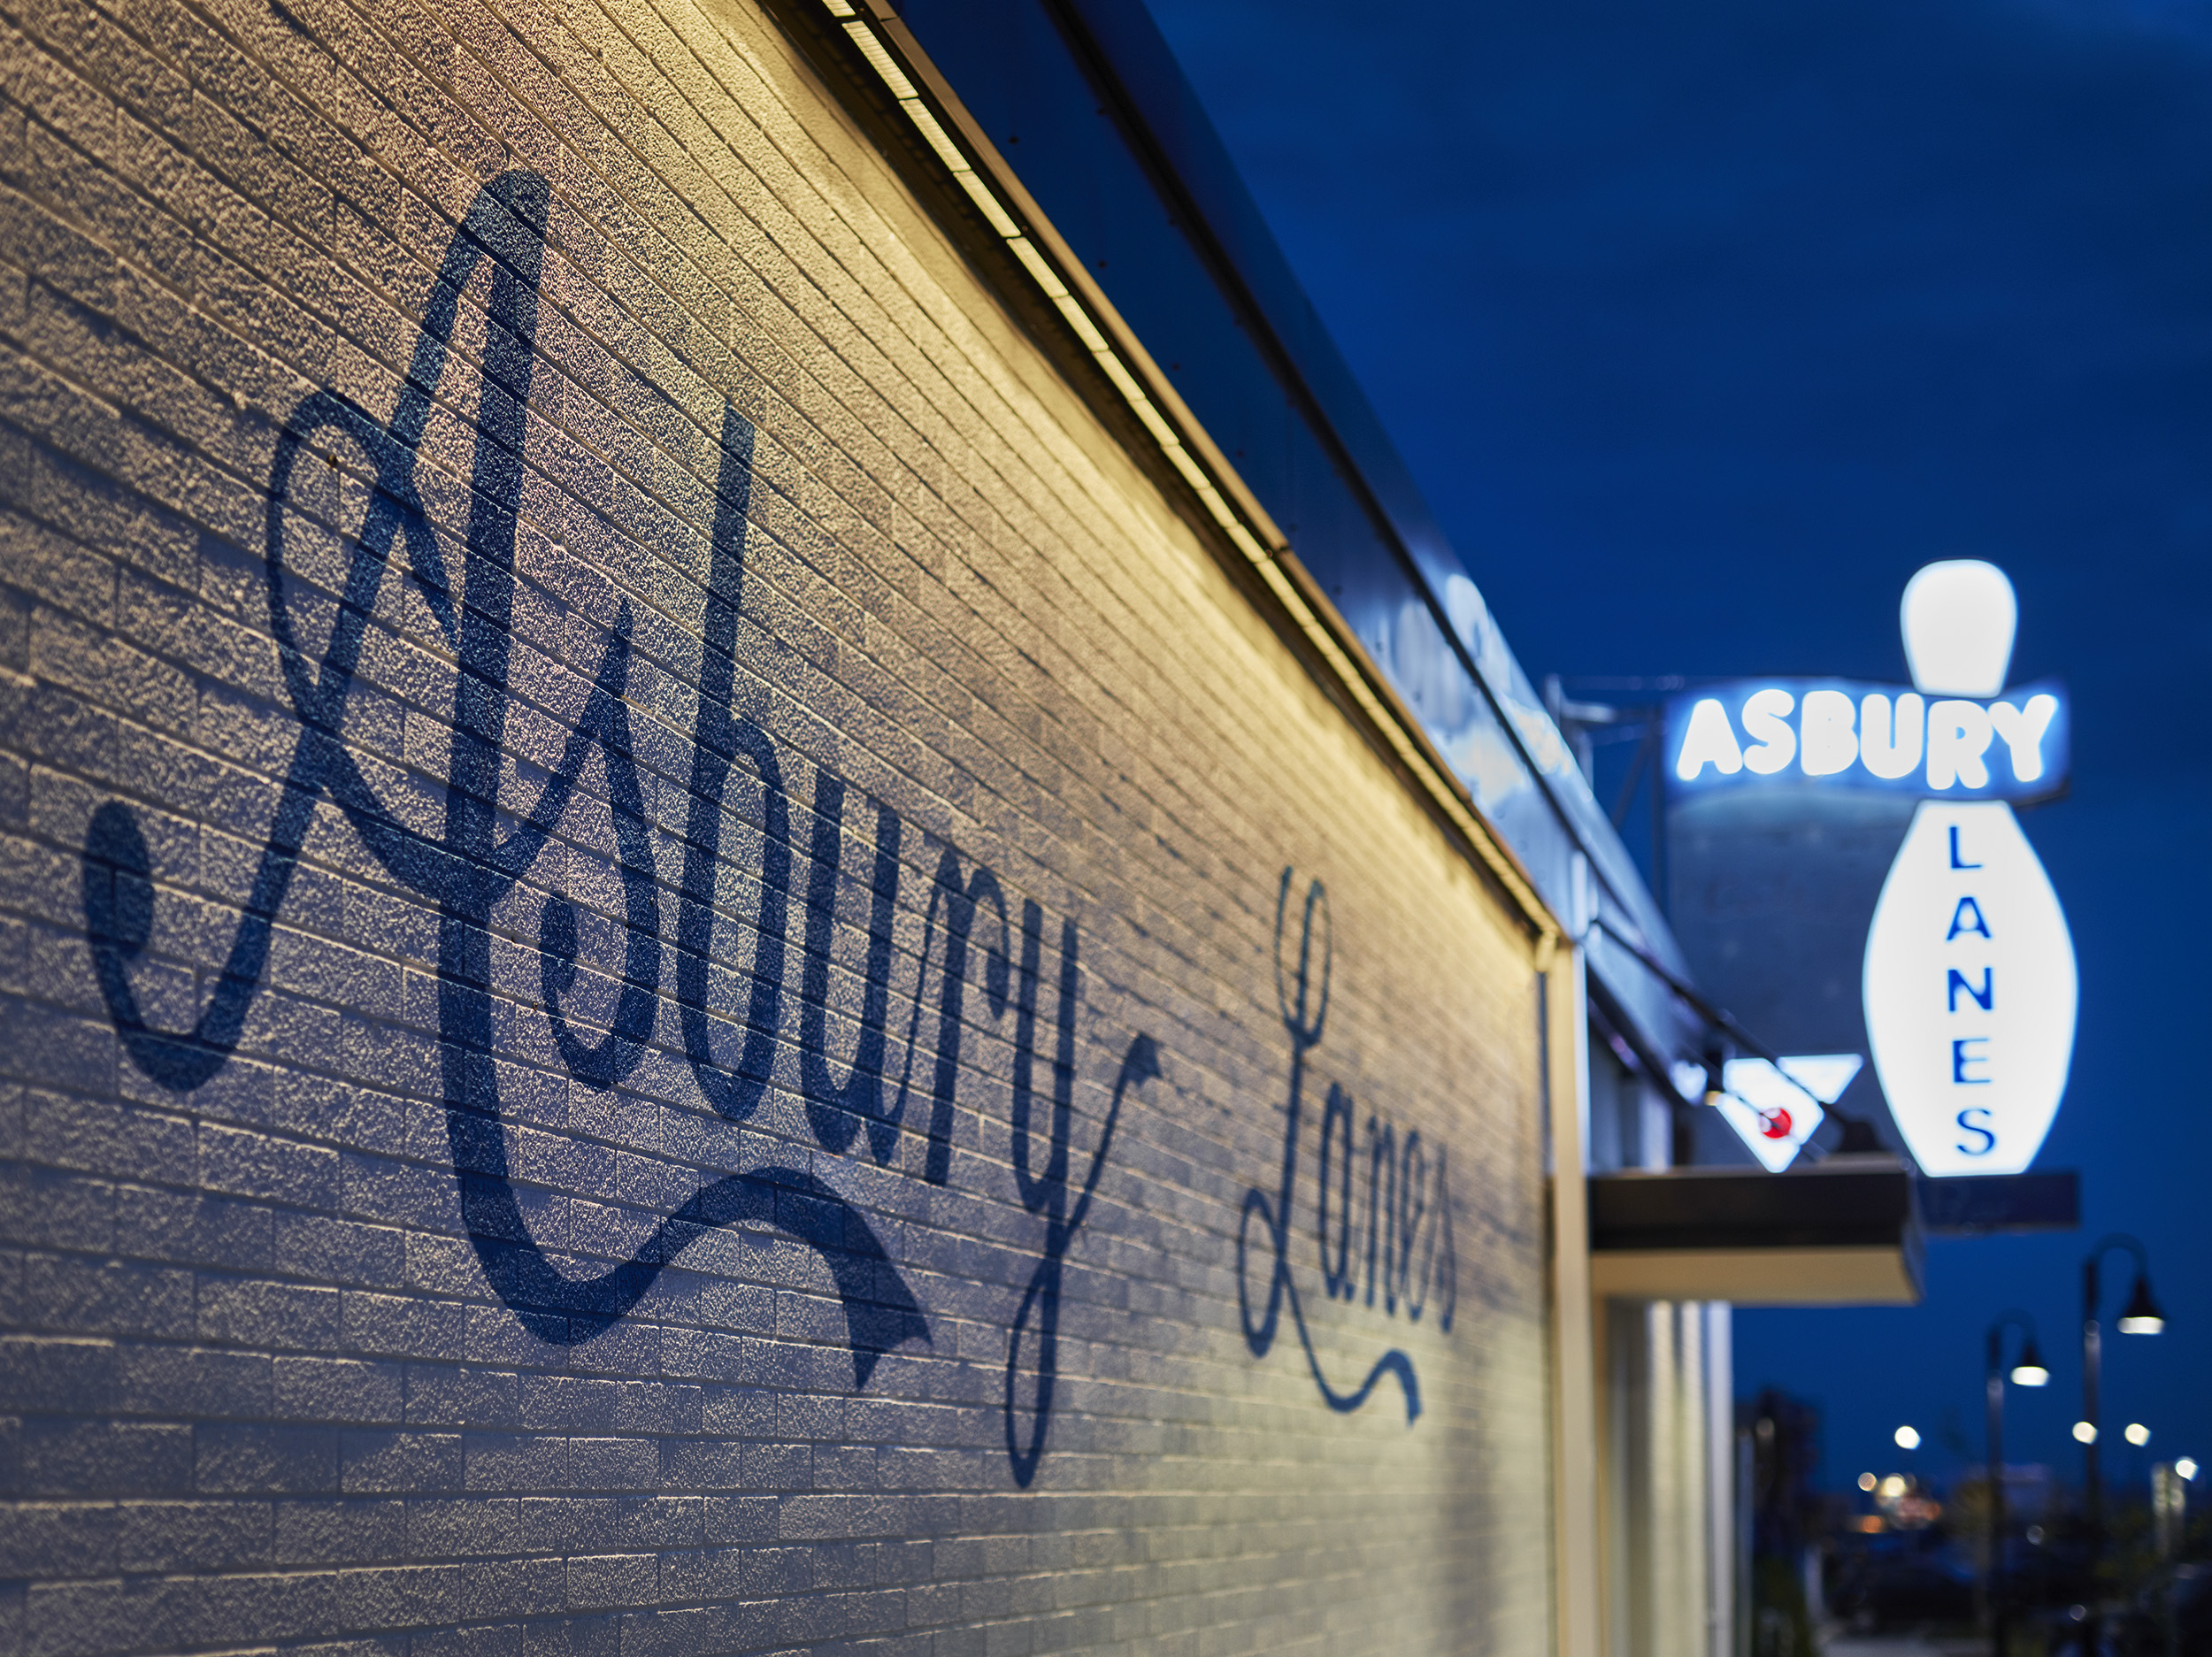 Asbury Lanes | Collater.al